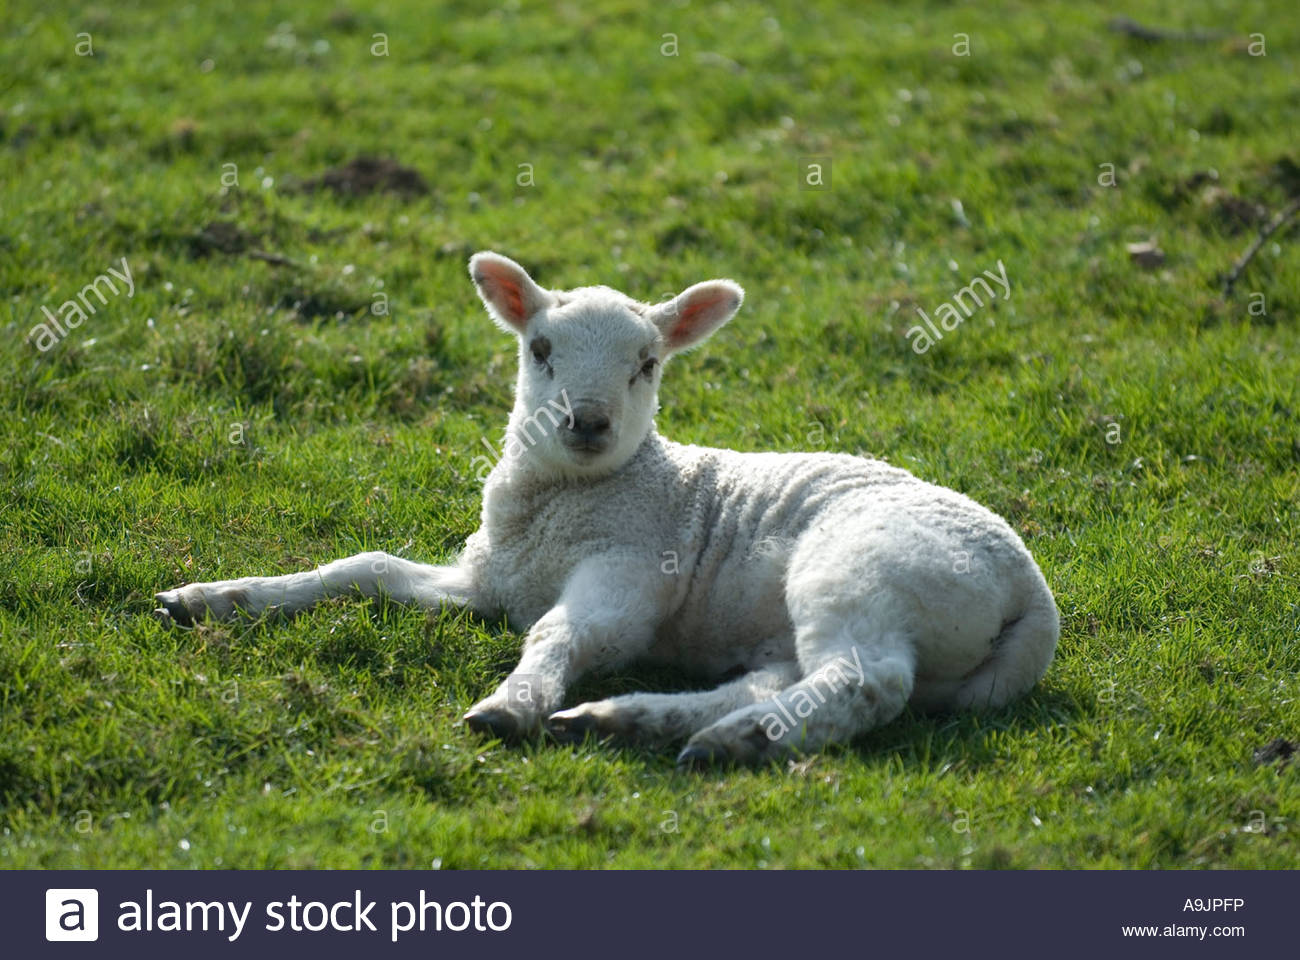 Lamb in Spring, laying on grass in field. Kent, England. Stock Photo